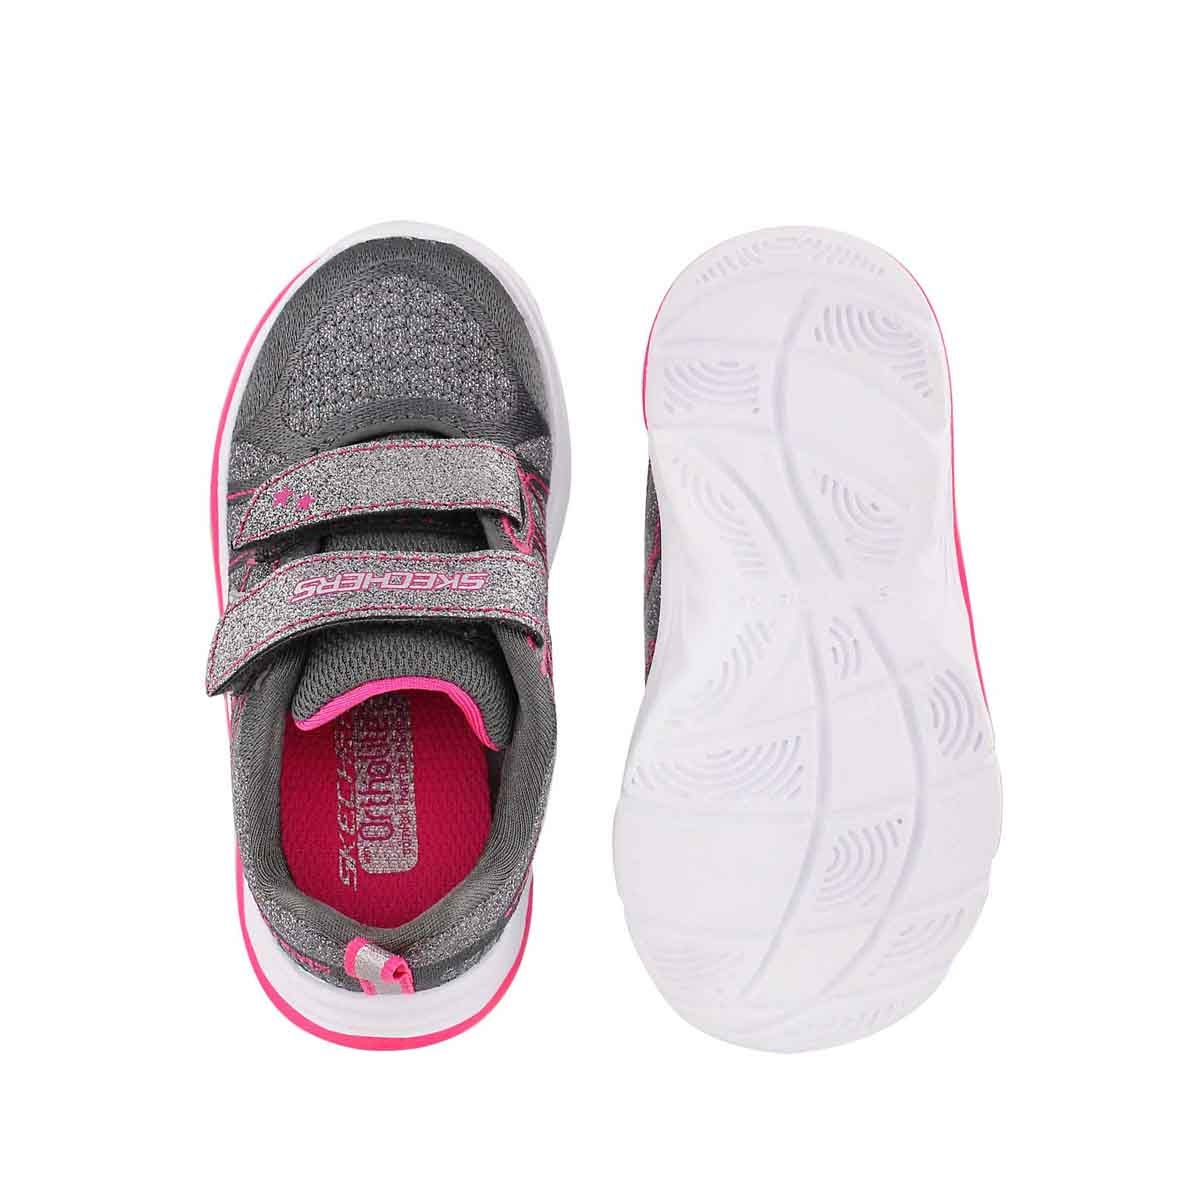 Inf Lil Glammer charcoal running shoe